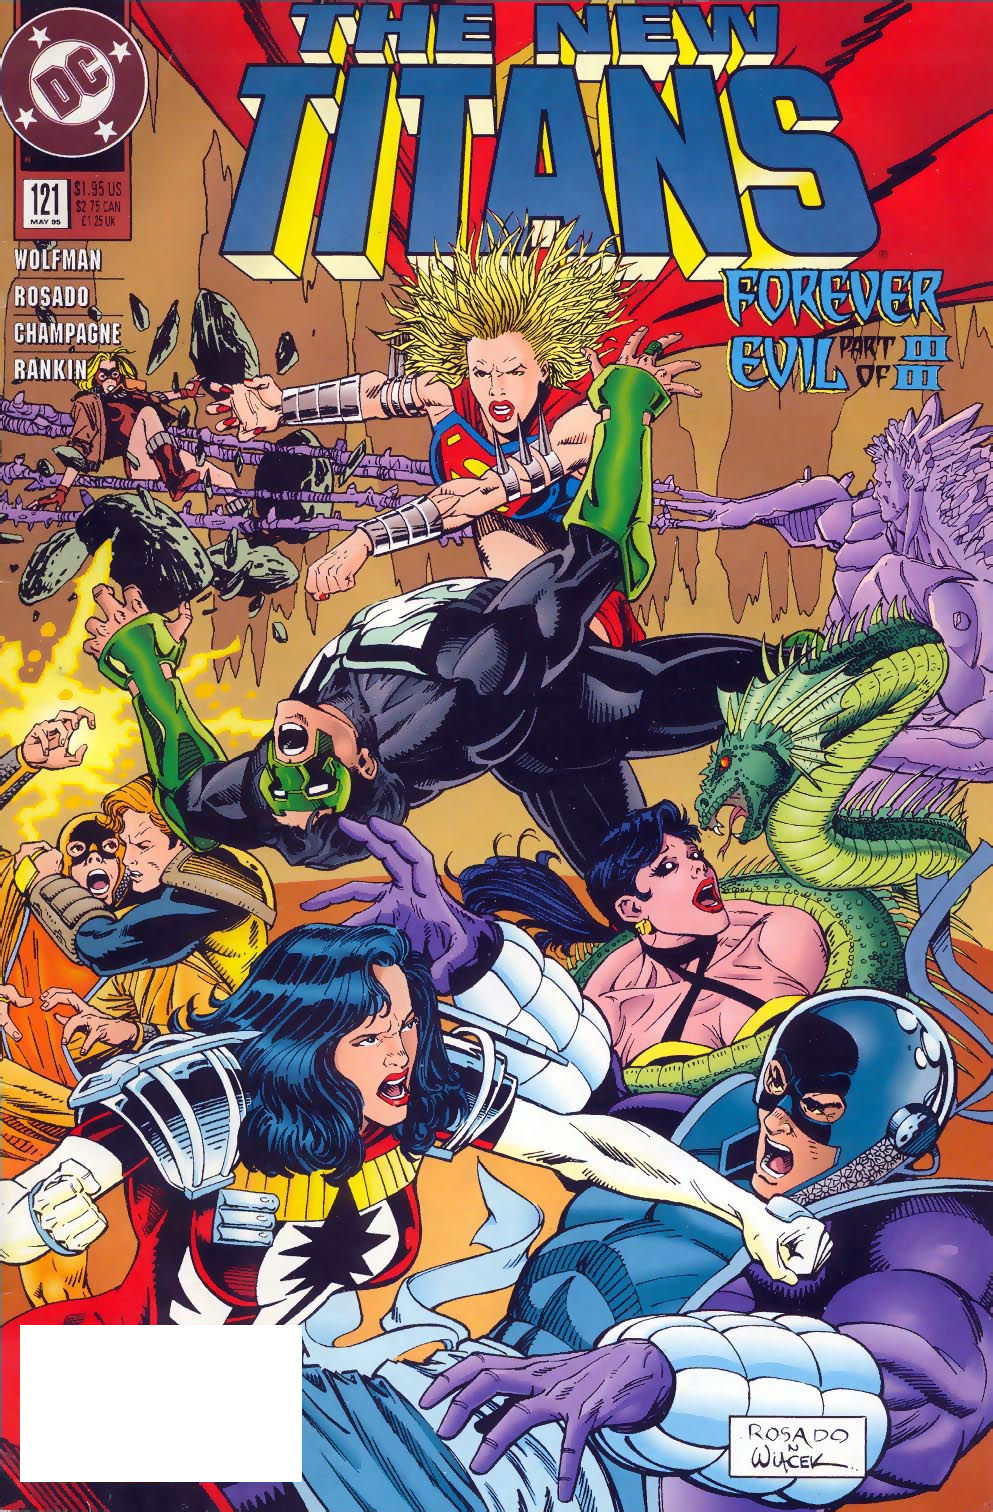 The New Titans (1984) #121, cover penciled by William Rosado & inked by Bob Wiacek.